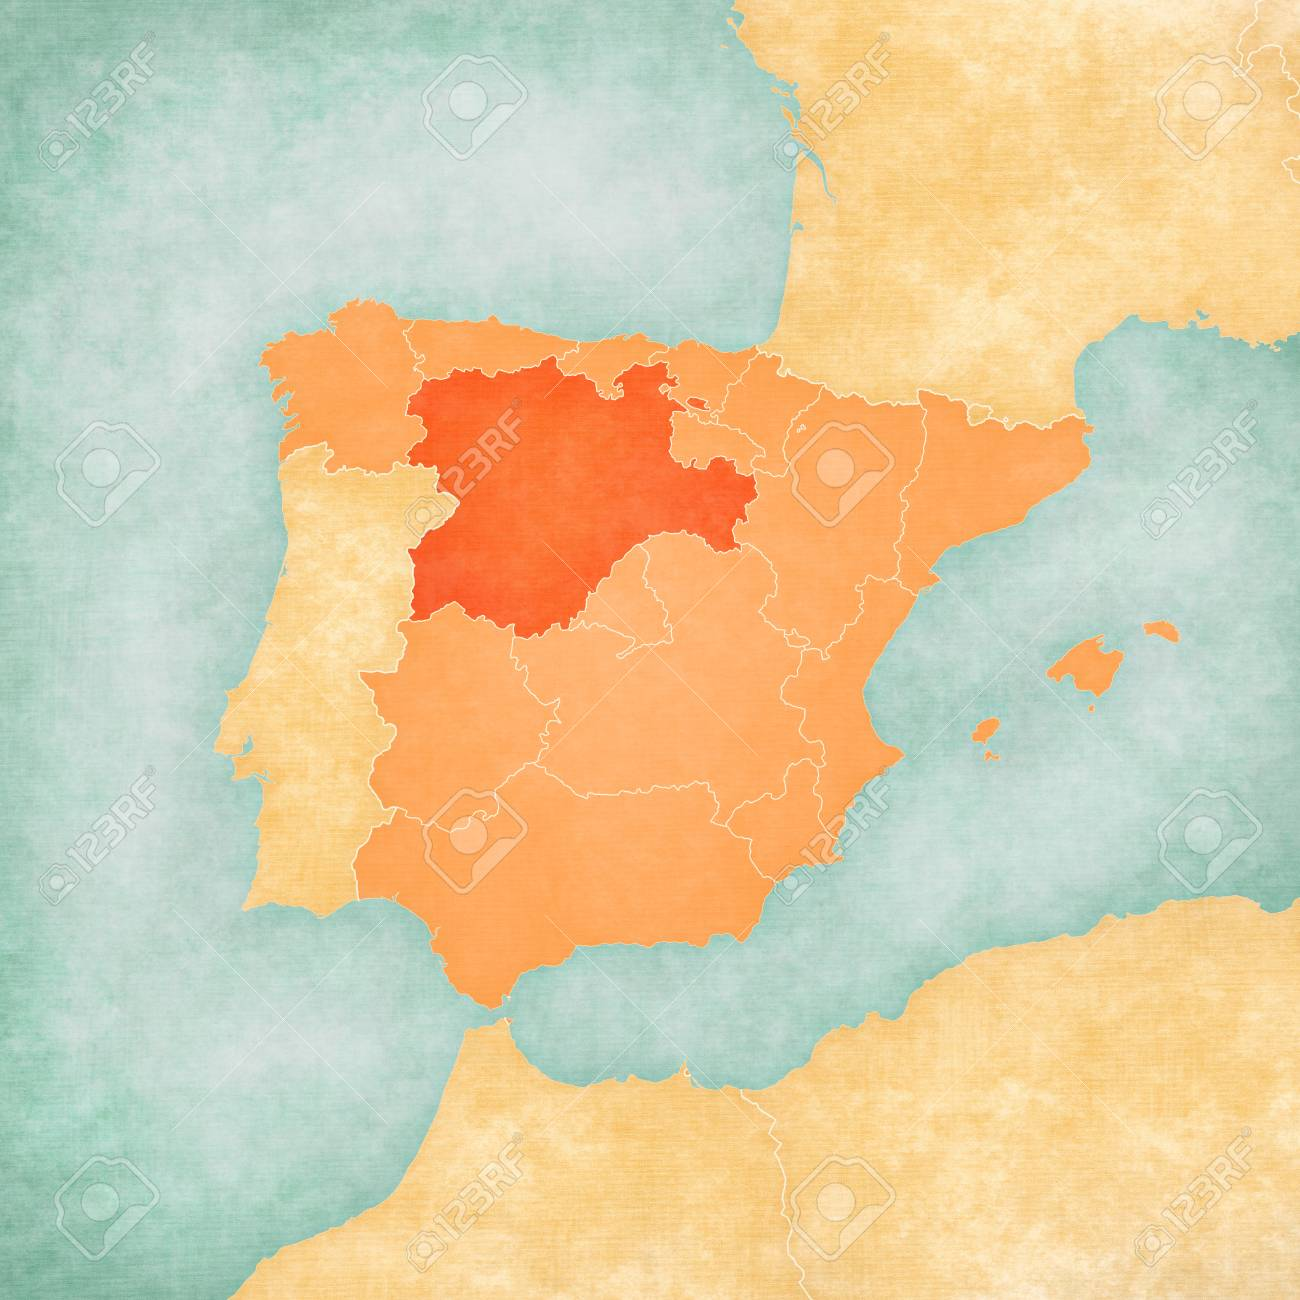 Castile And Leon Spain On The Map Of Iberian Peninsula In Soft